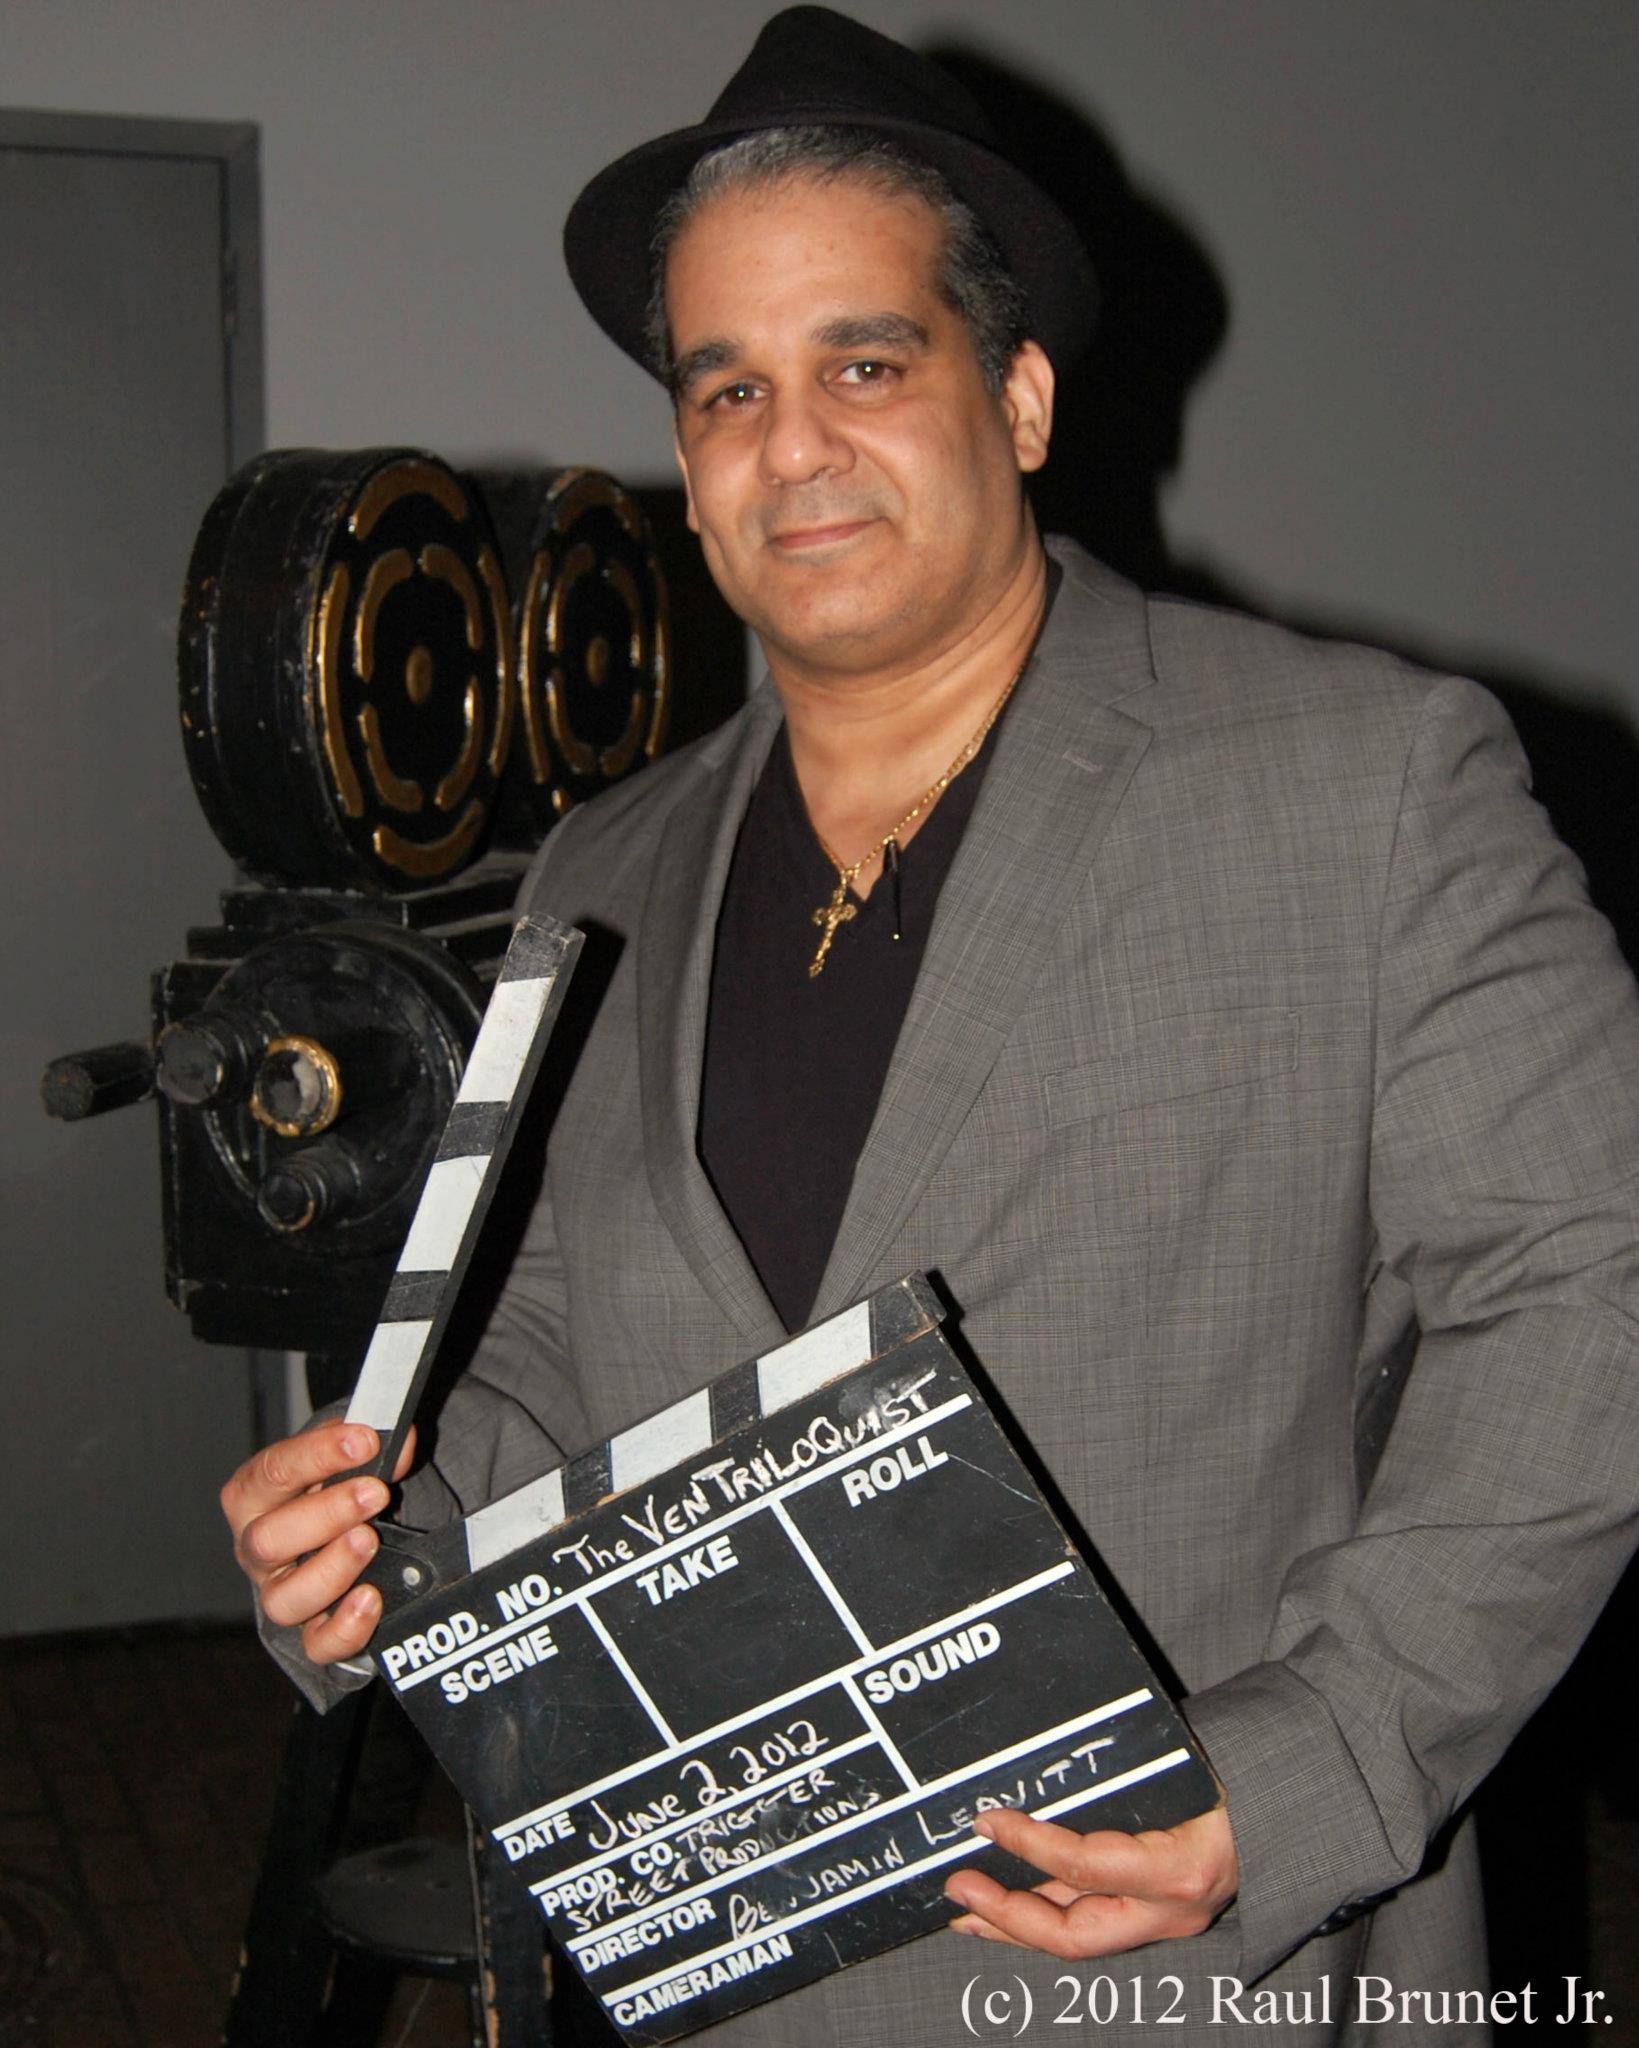 Filmmaker, Antonio Saillant at Kevin Spacey's First Shot Film Premiere at New York's Highline Stages in the Meatpacking District